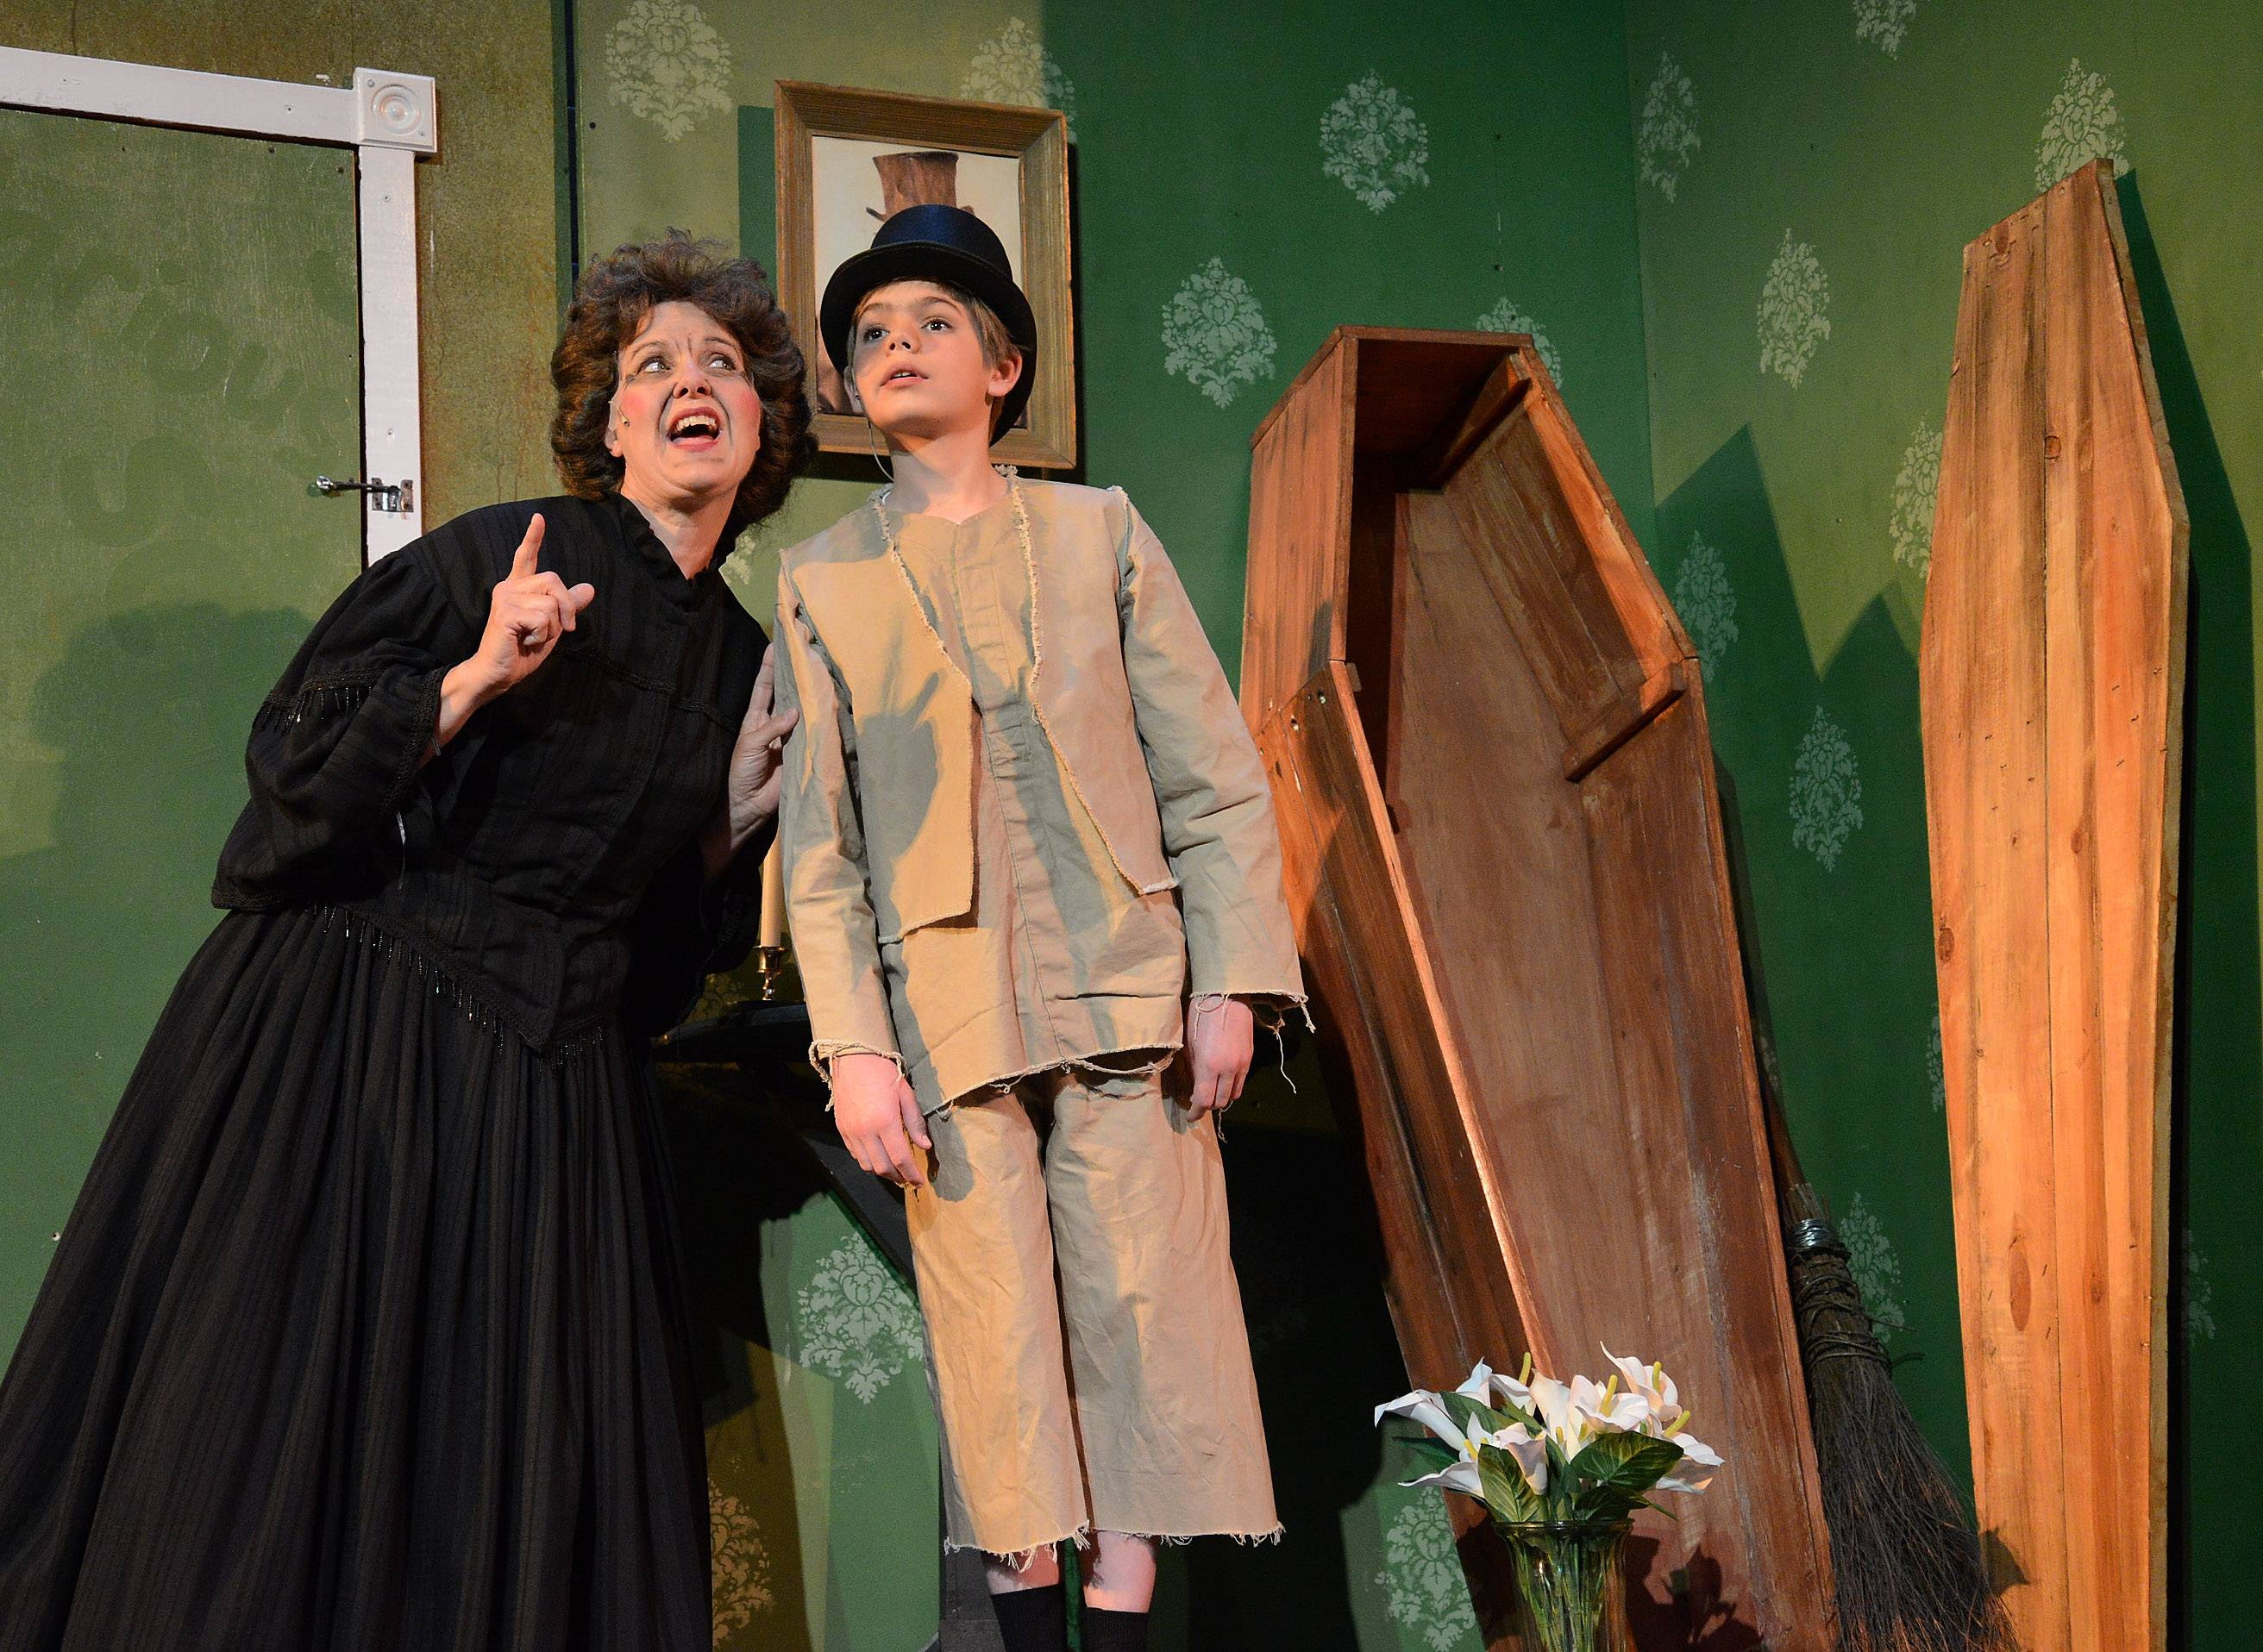 Nanette Sowa as Mrs. Sowerberry, the undertaker's wife, with young Oliver, played by Benjamin Sanetra.